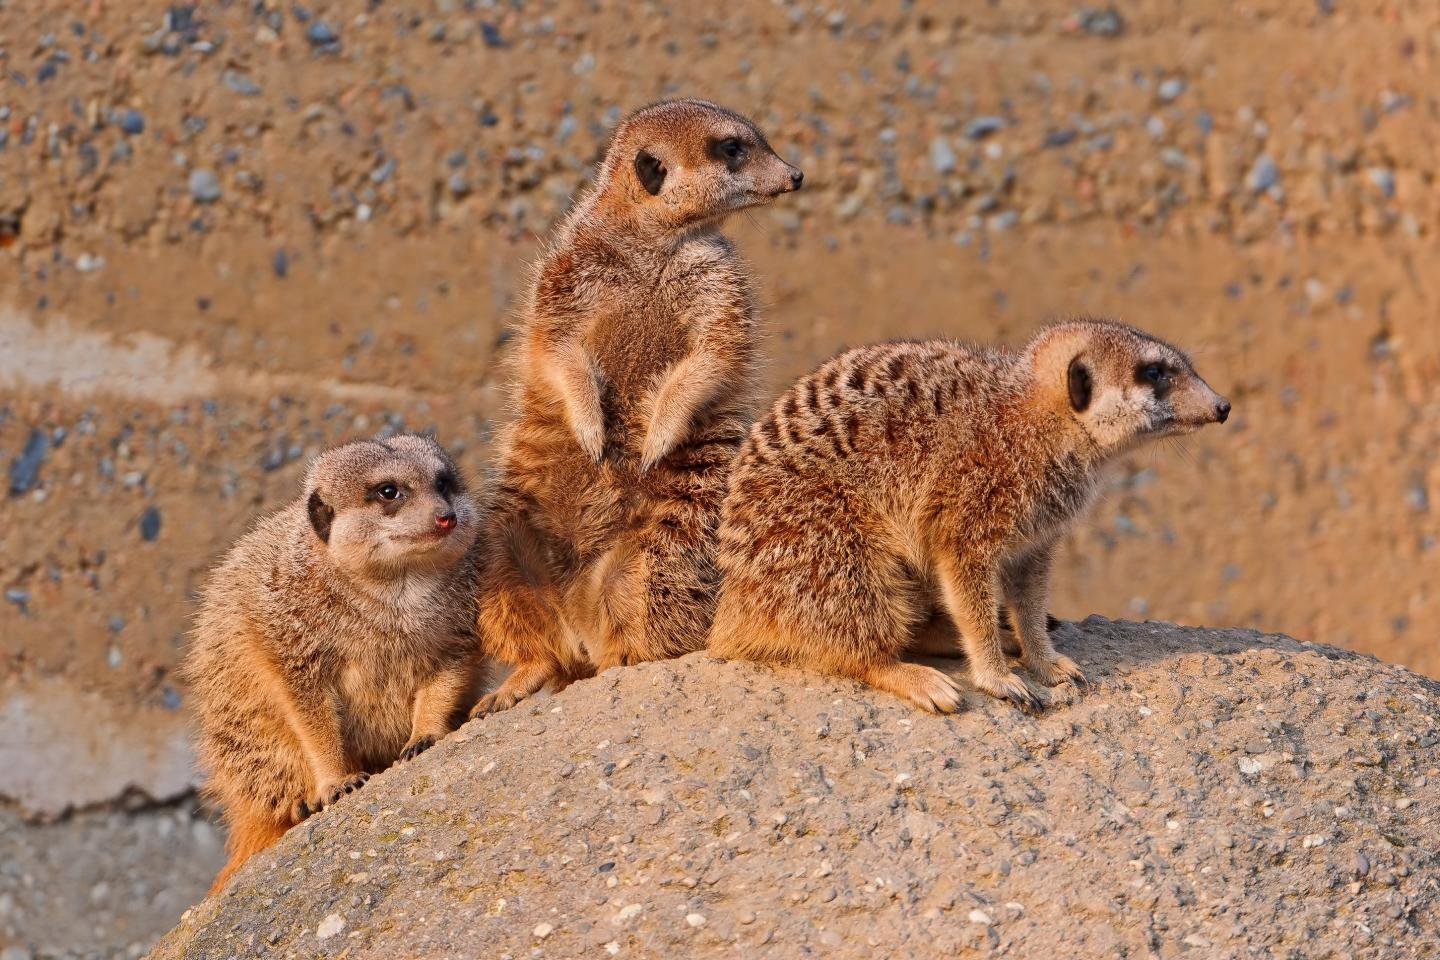 Free Meerkat high quality wallpaper ID:164575 for hd 1440x960 PC